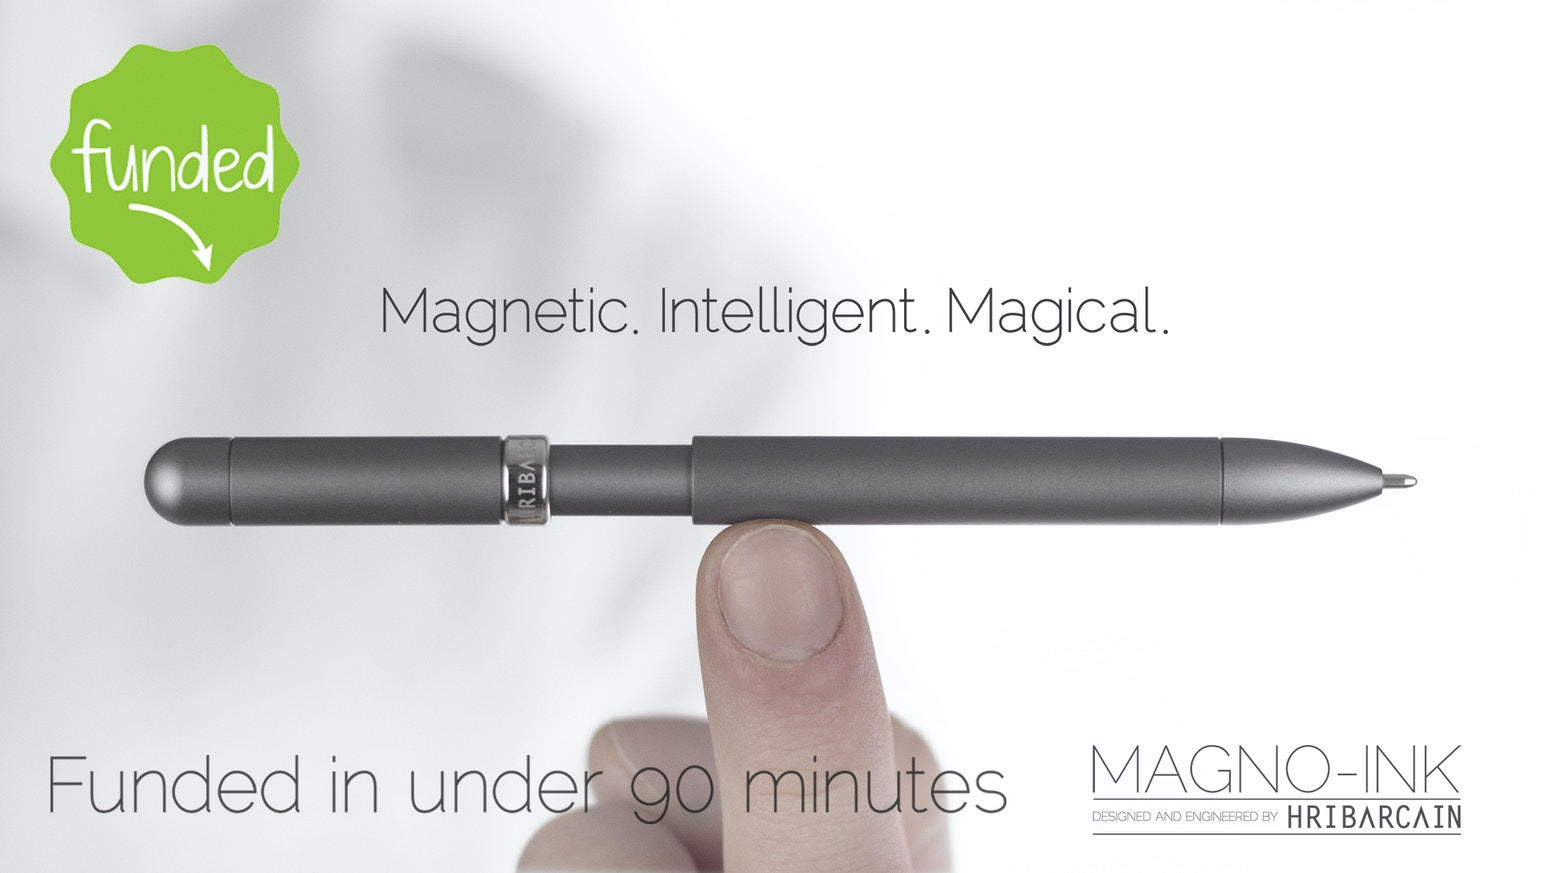 MAGNO INK:The latest innovation from HRIBARCAIN- when a pen no longer conforms to the status-quo using a multi-magnet propulsion system